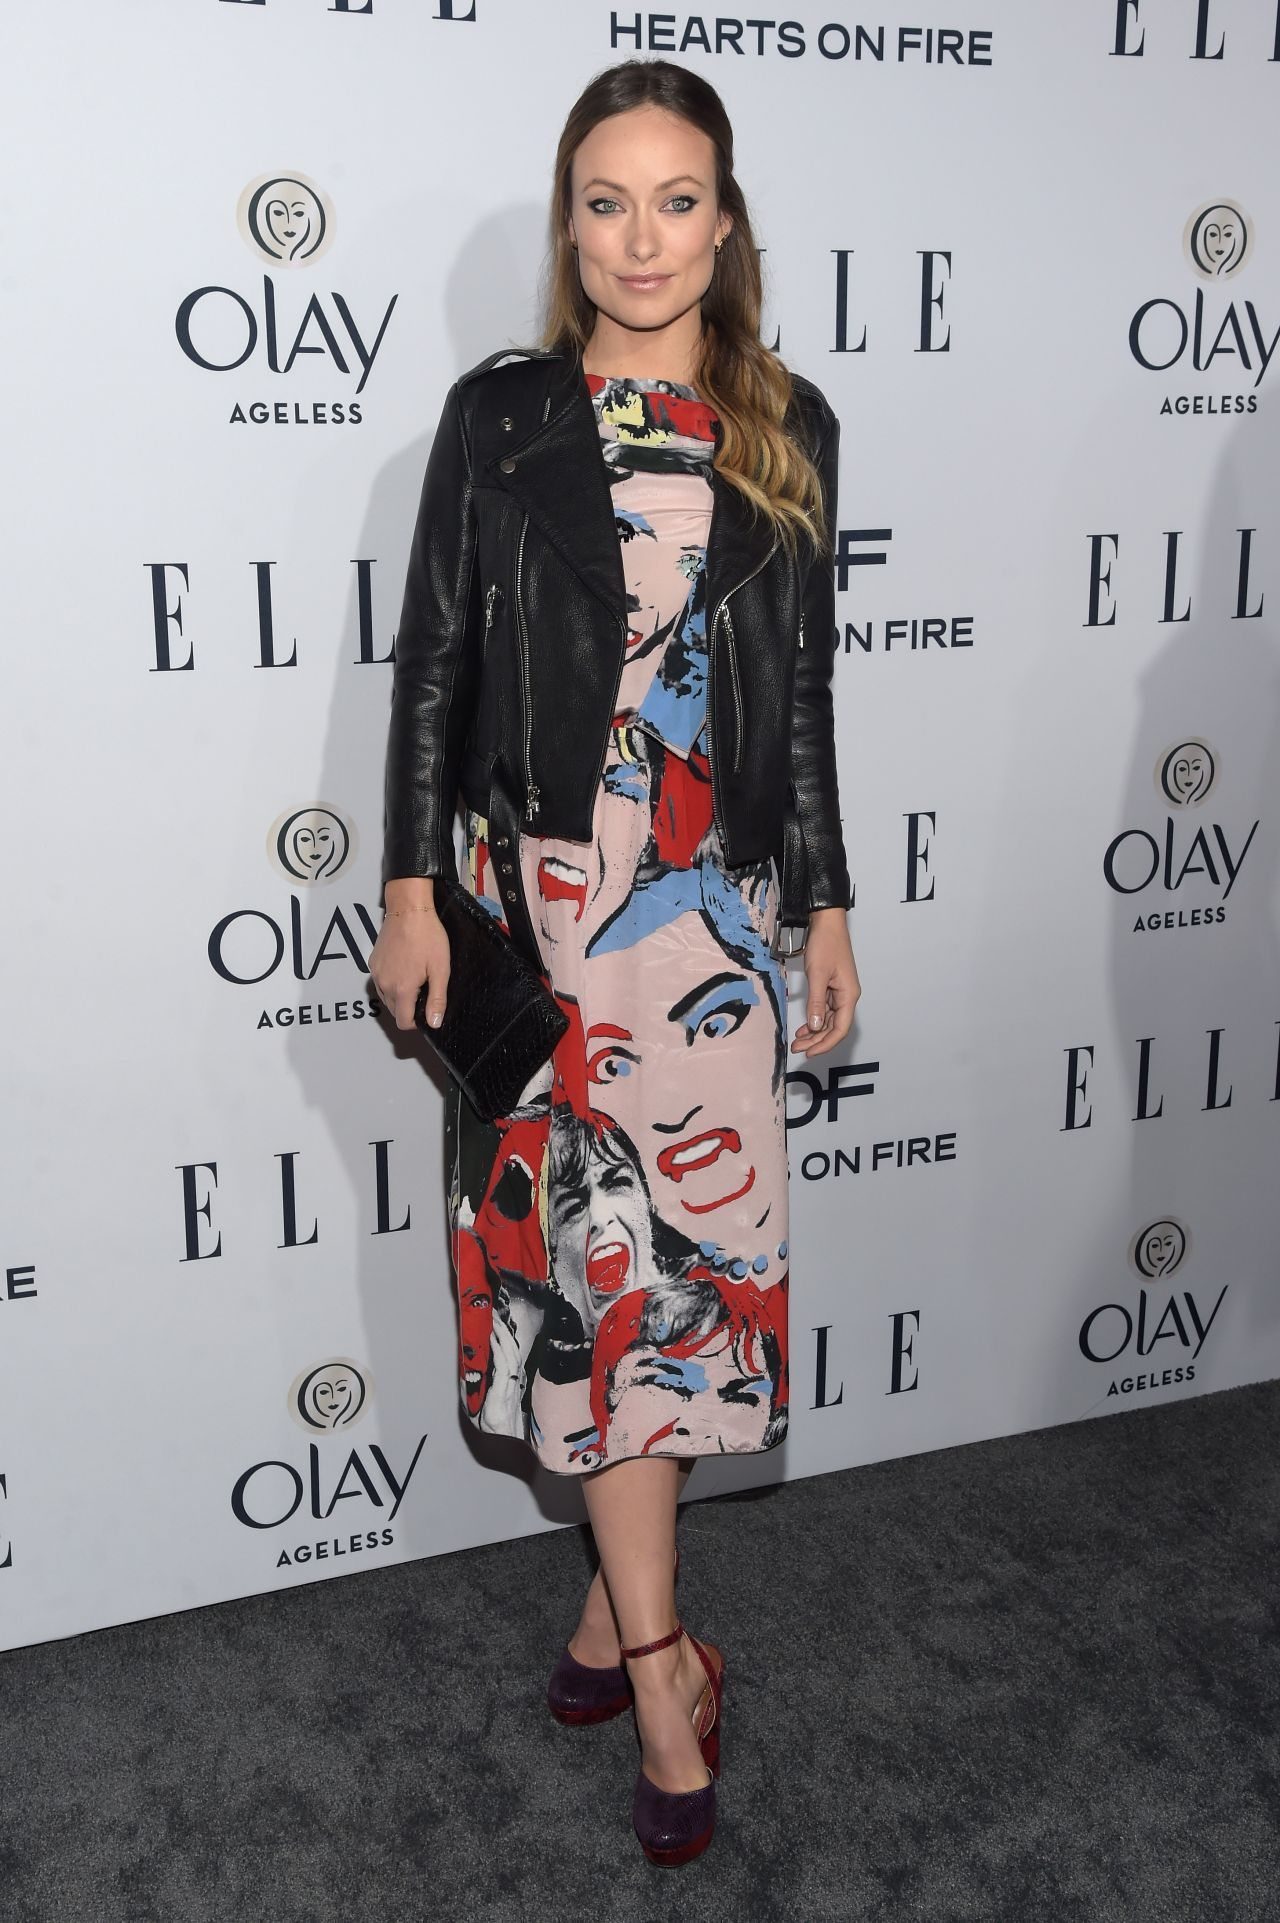 olivia-wilde-2016-elle-s-women-in-television-celebration-in-los-angeles-9-1